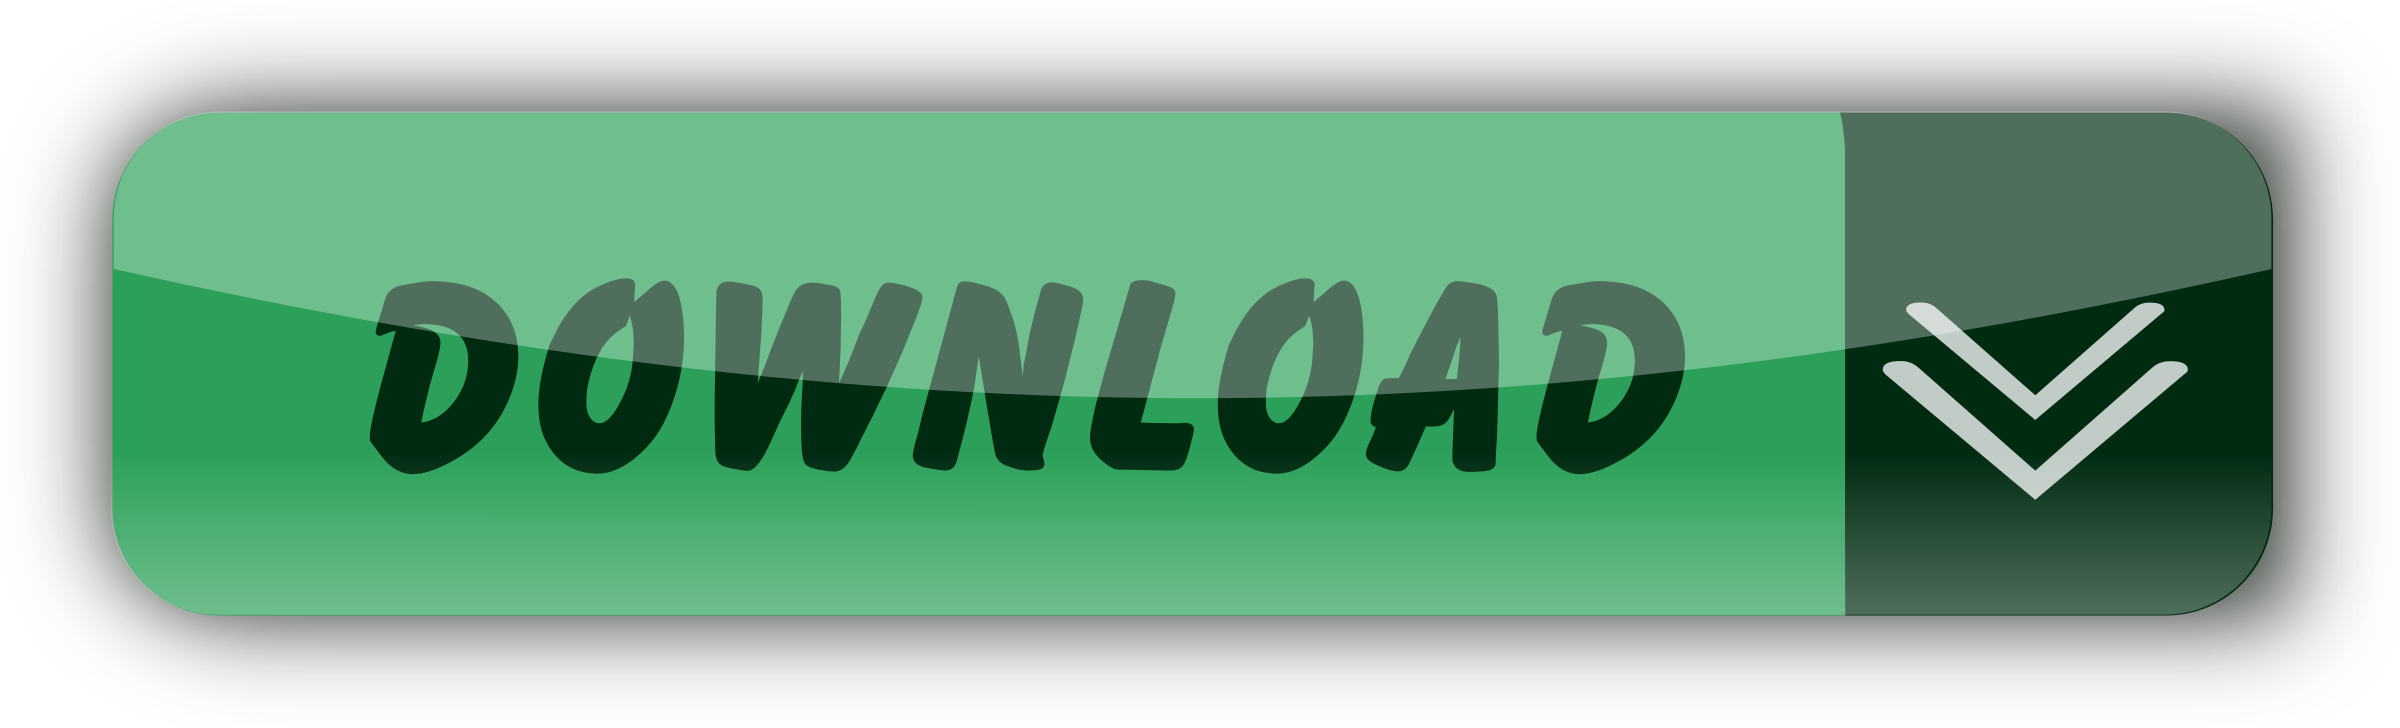 Image result for download button png icon